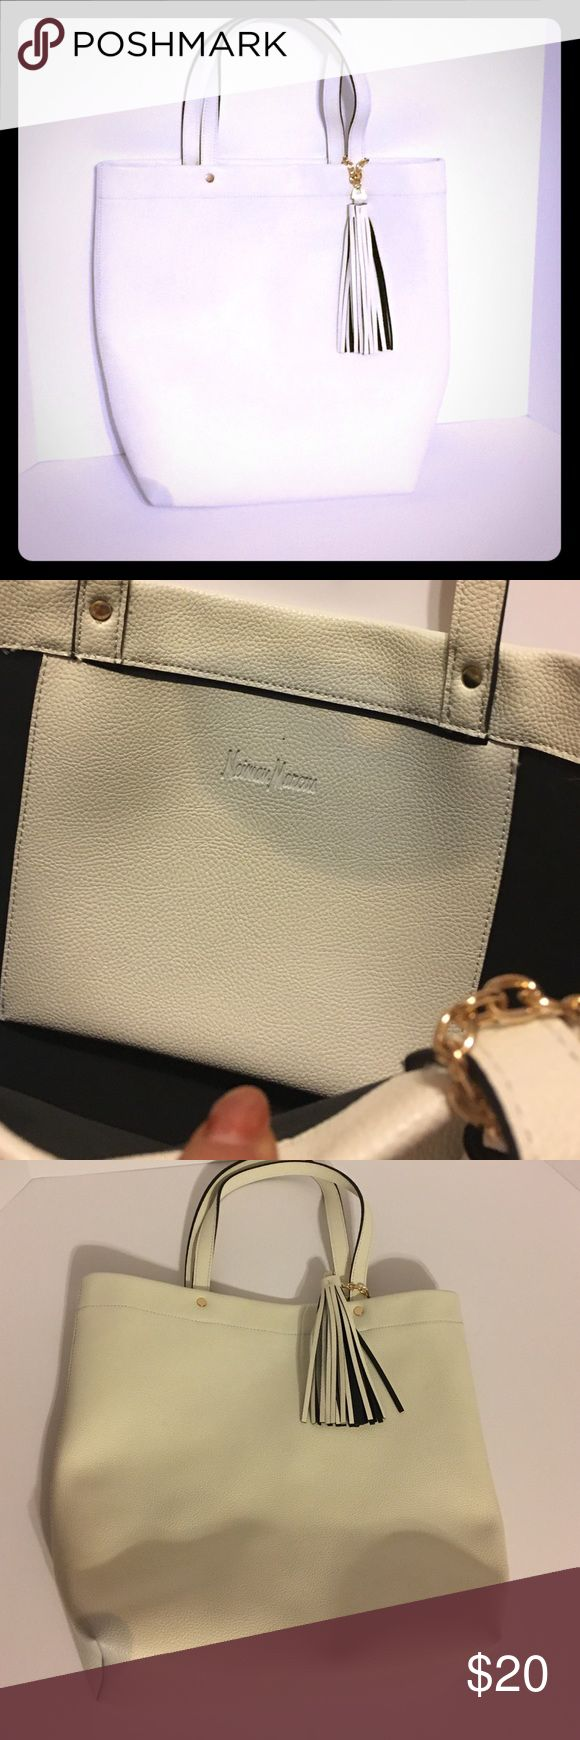 Neiman Marcus tote Cream Neiman Marcus tote, never worn but I did purchase from factory outlet because it has two discolored spots, one on inside pocket and one on exterior corner. Not really noticeable esp when carrying. Neiman Marcus Bags Totes